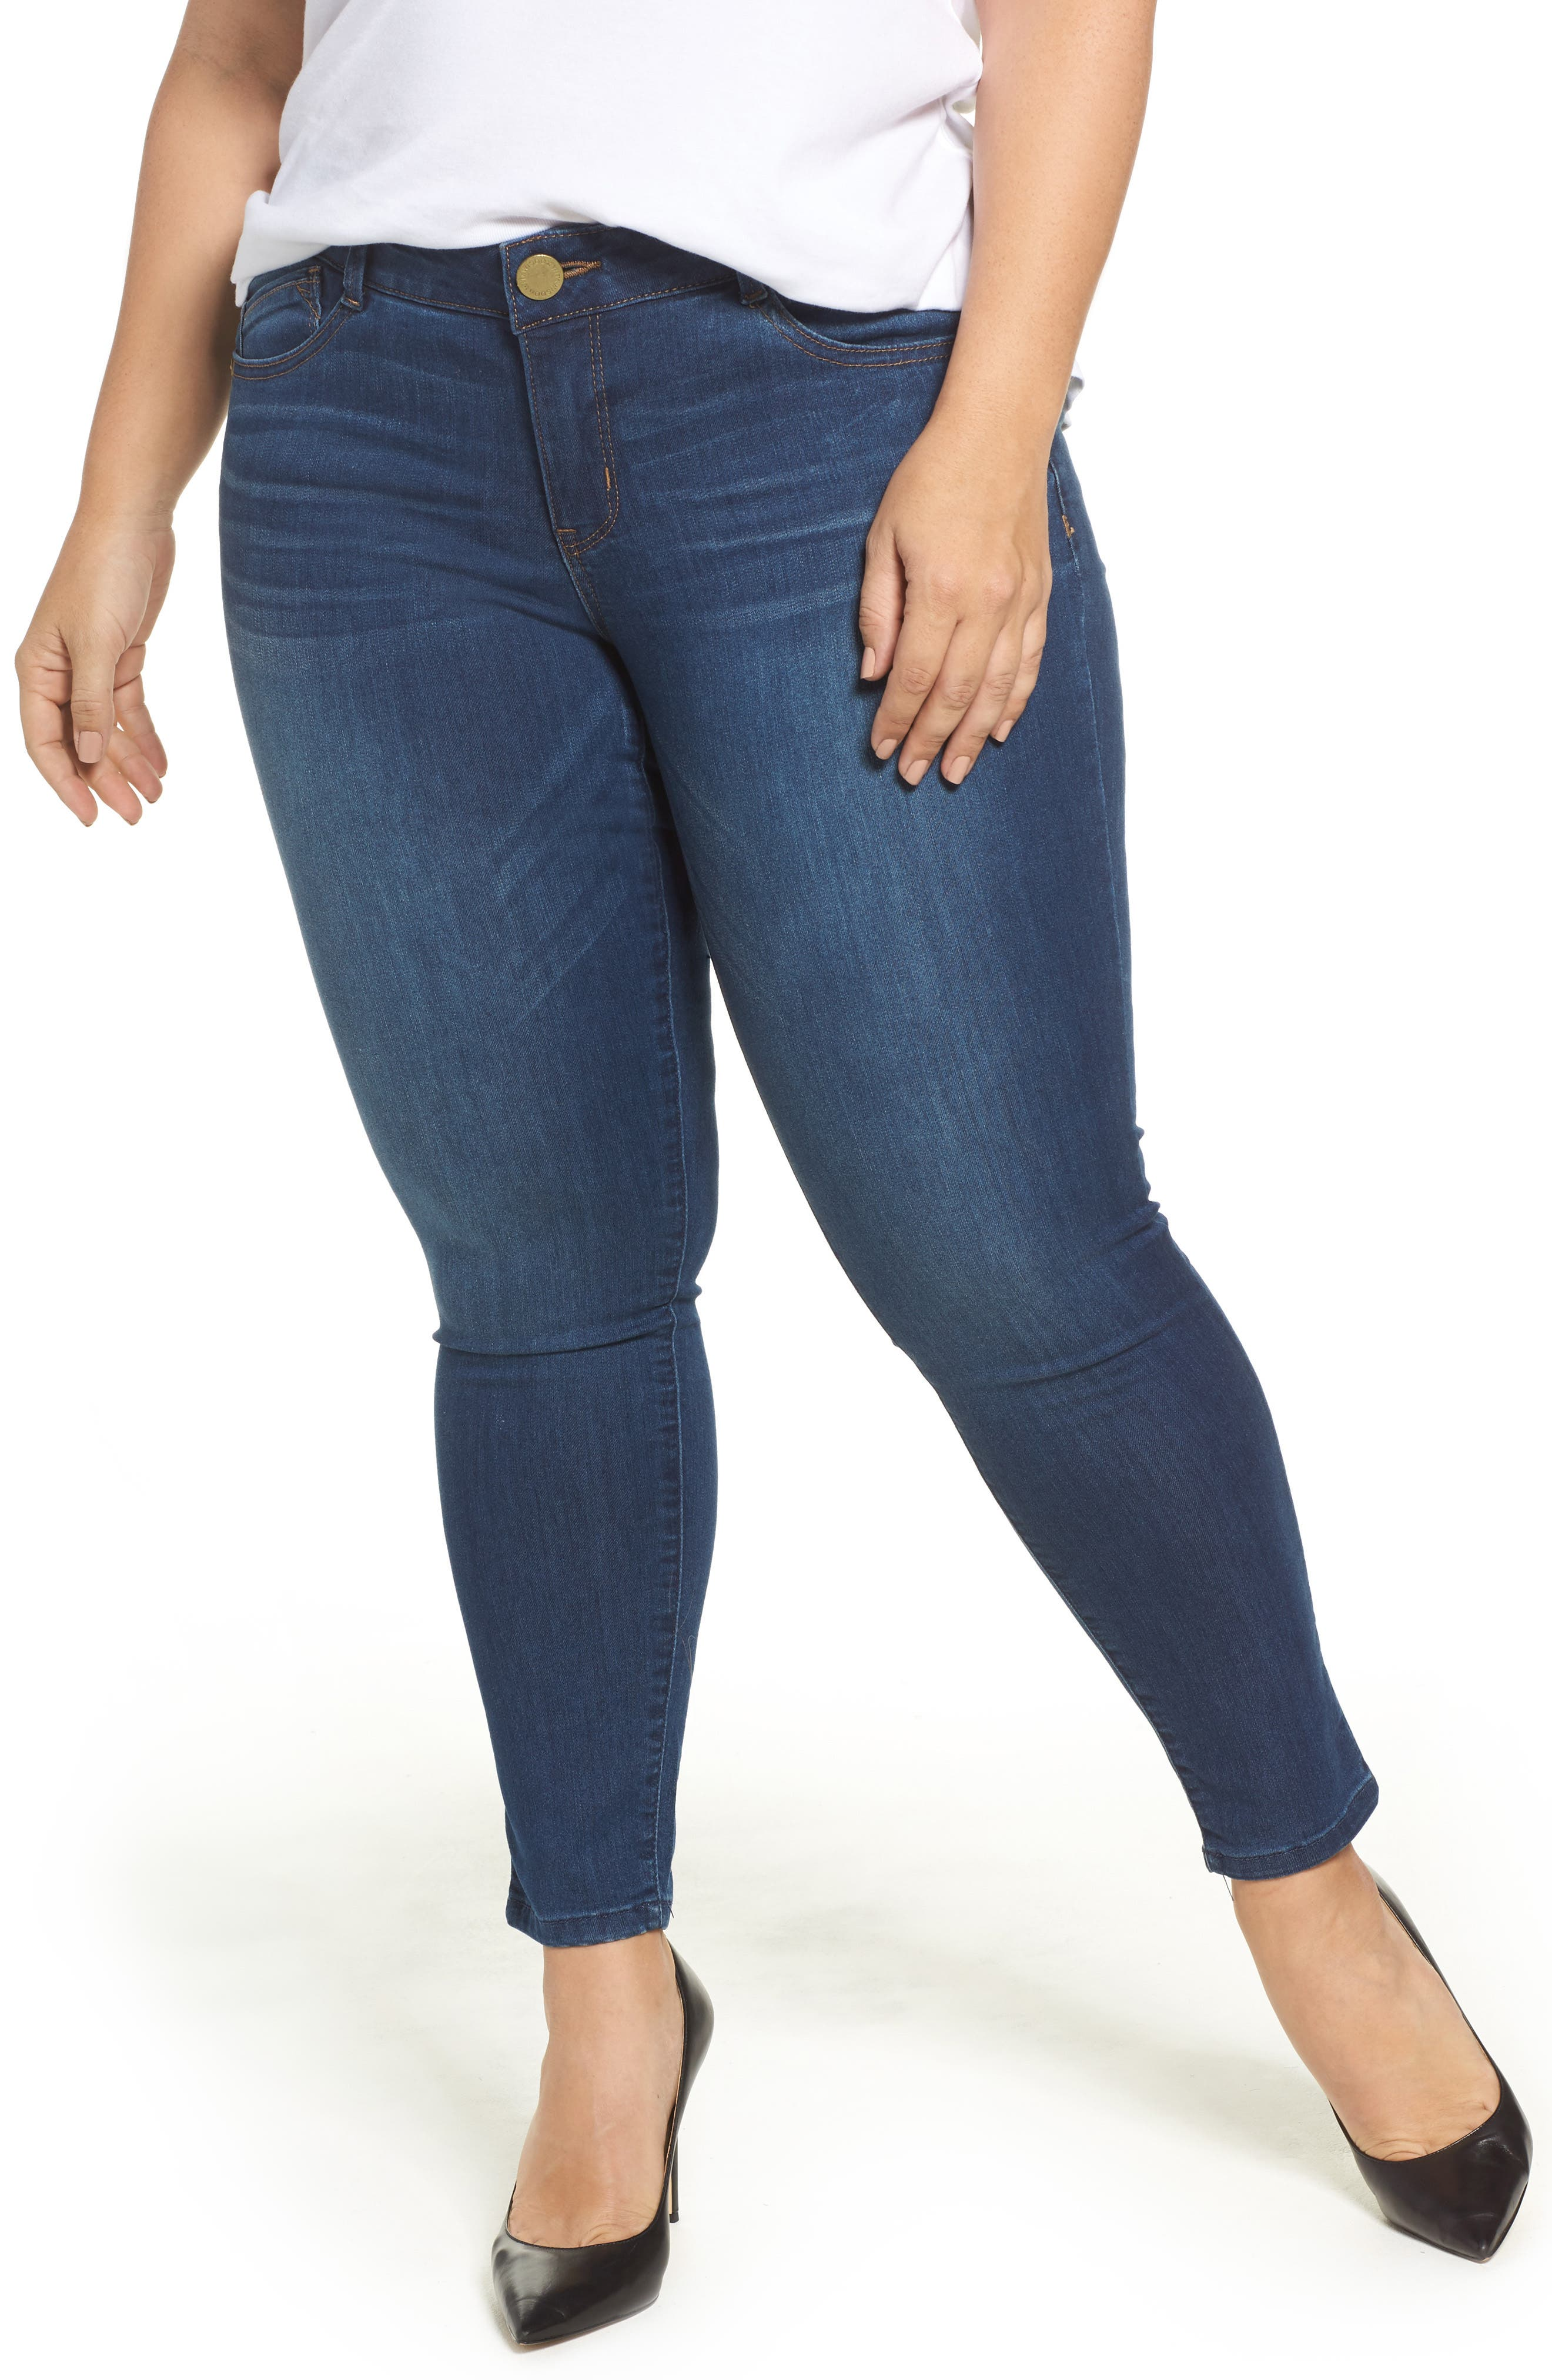 Ab-solution Skinny Jeans,                         Main,                         color, 420